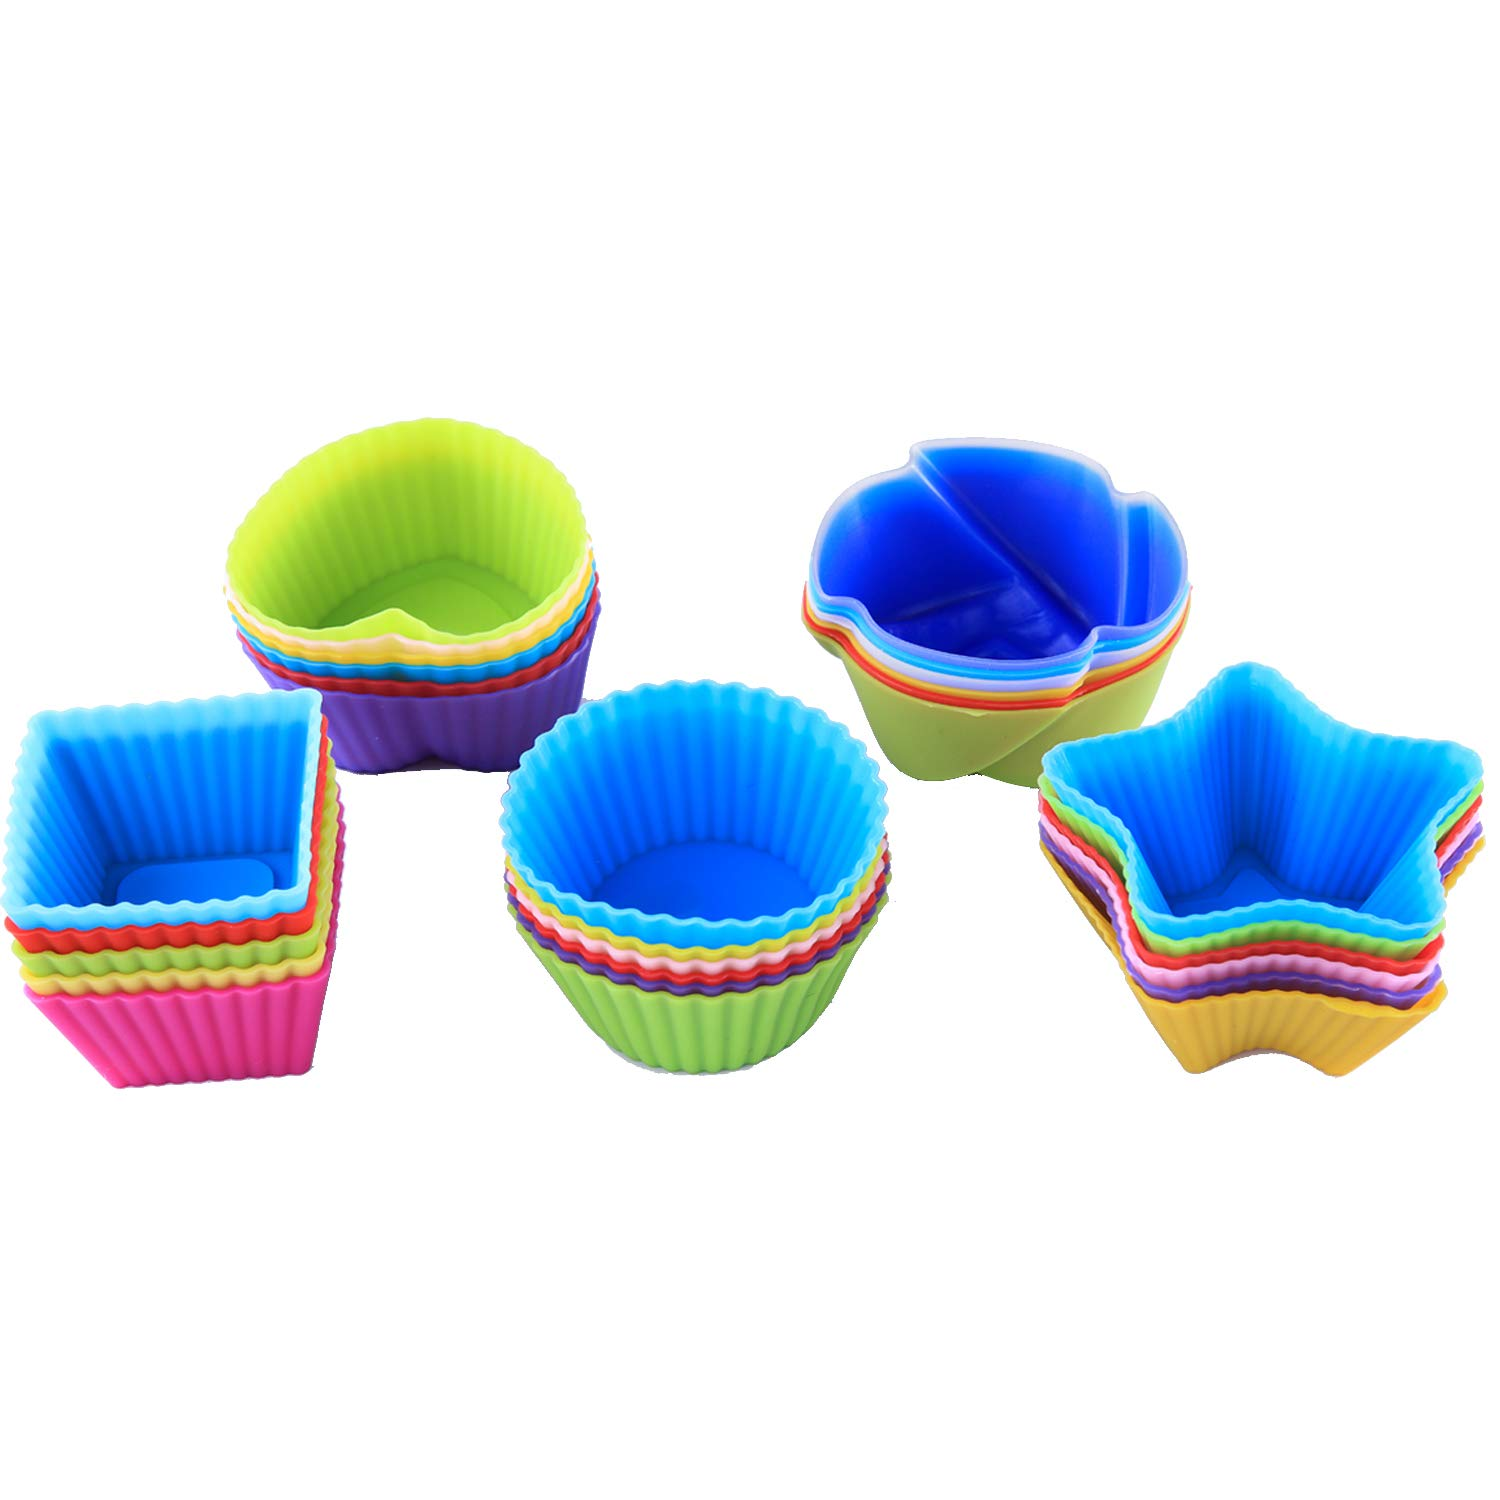 Baking Cups Pack of 30 Reusable Silicone Cup Nonstick Cupcake Liners, Food Grade Heat Resistant Mini Muffin Cup Chocolate Candy Molds Set